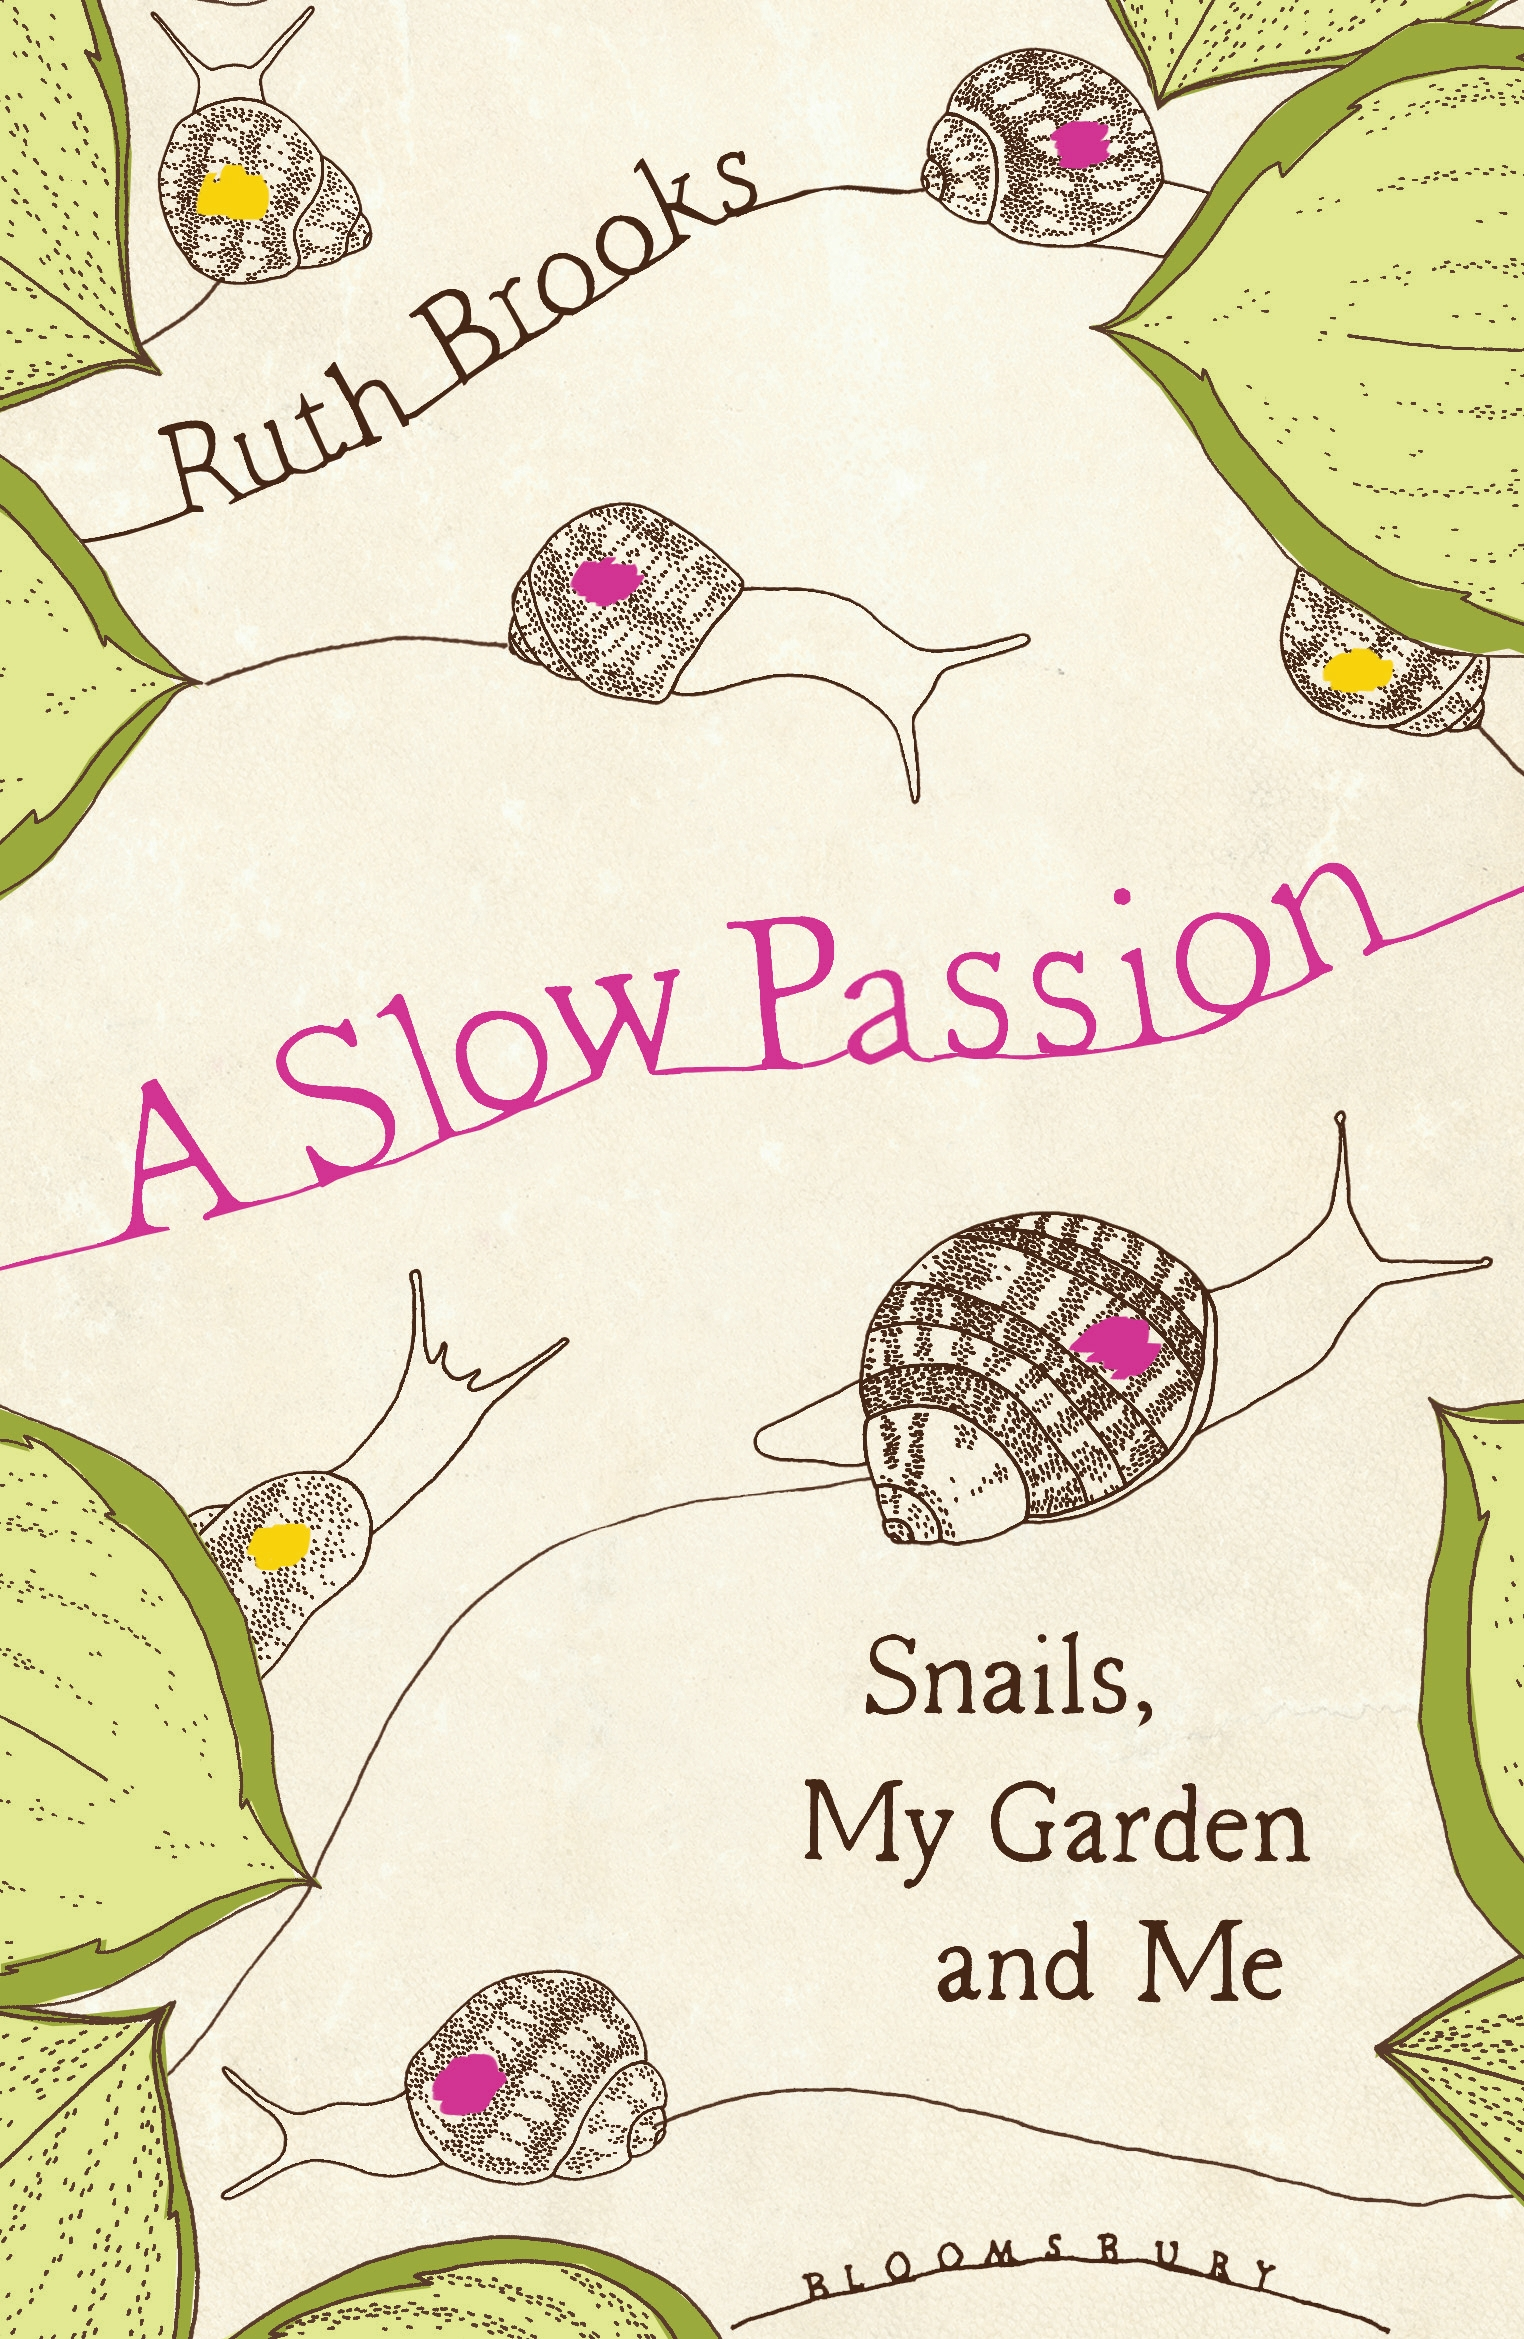 A Slow Passion Snails, My Garden and Me